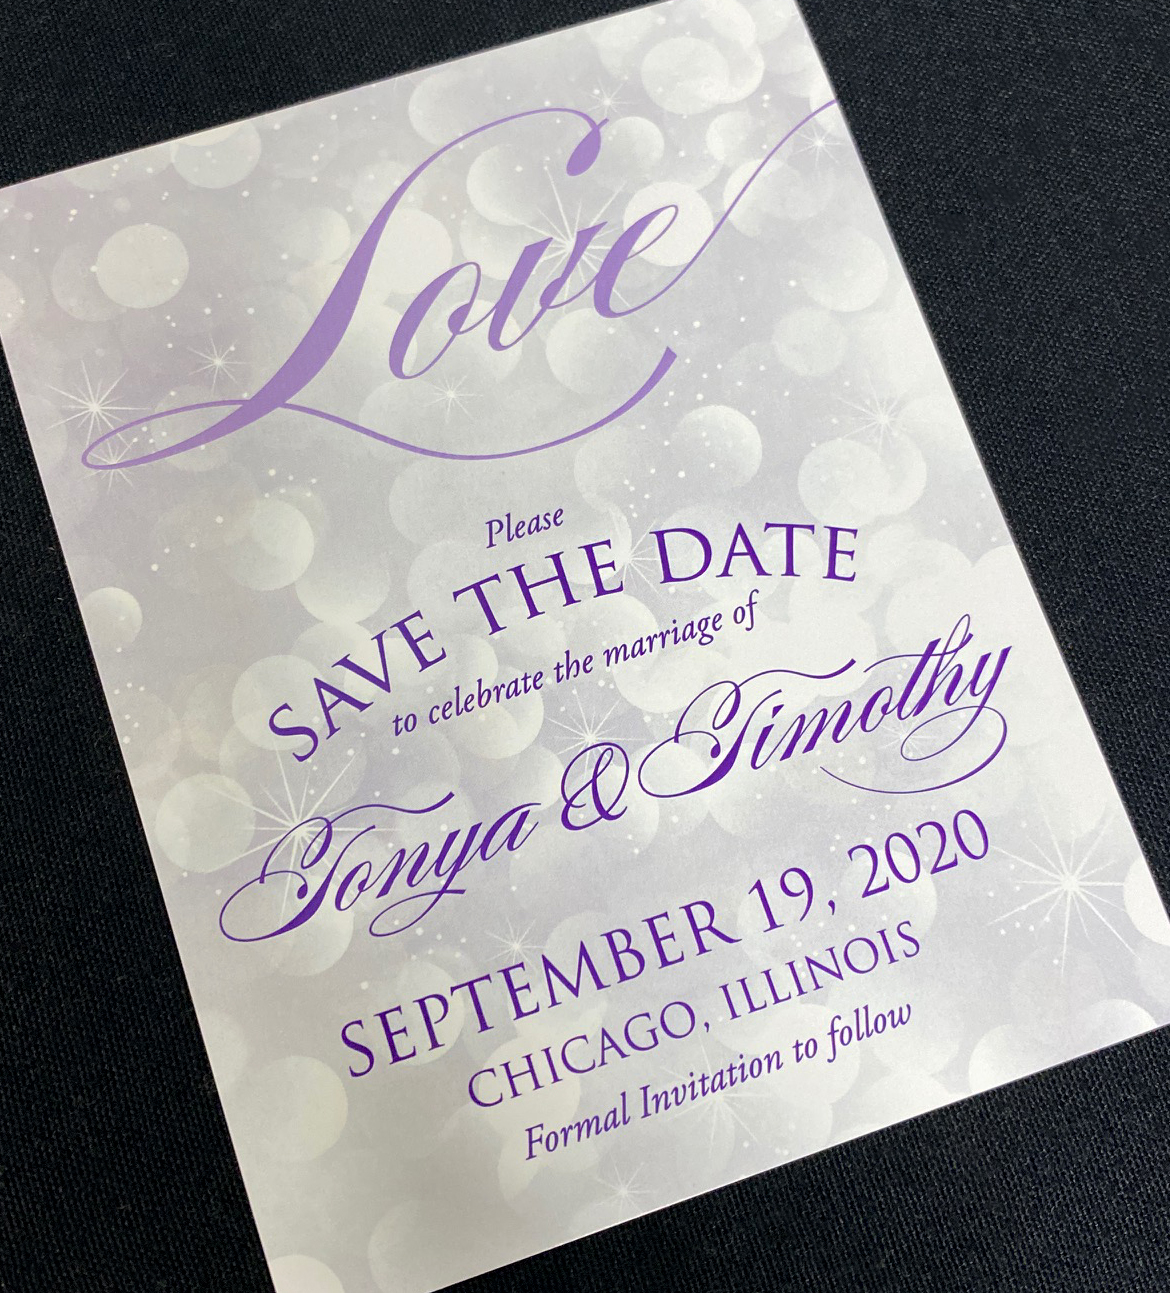 LoveSaveTheDate